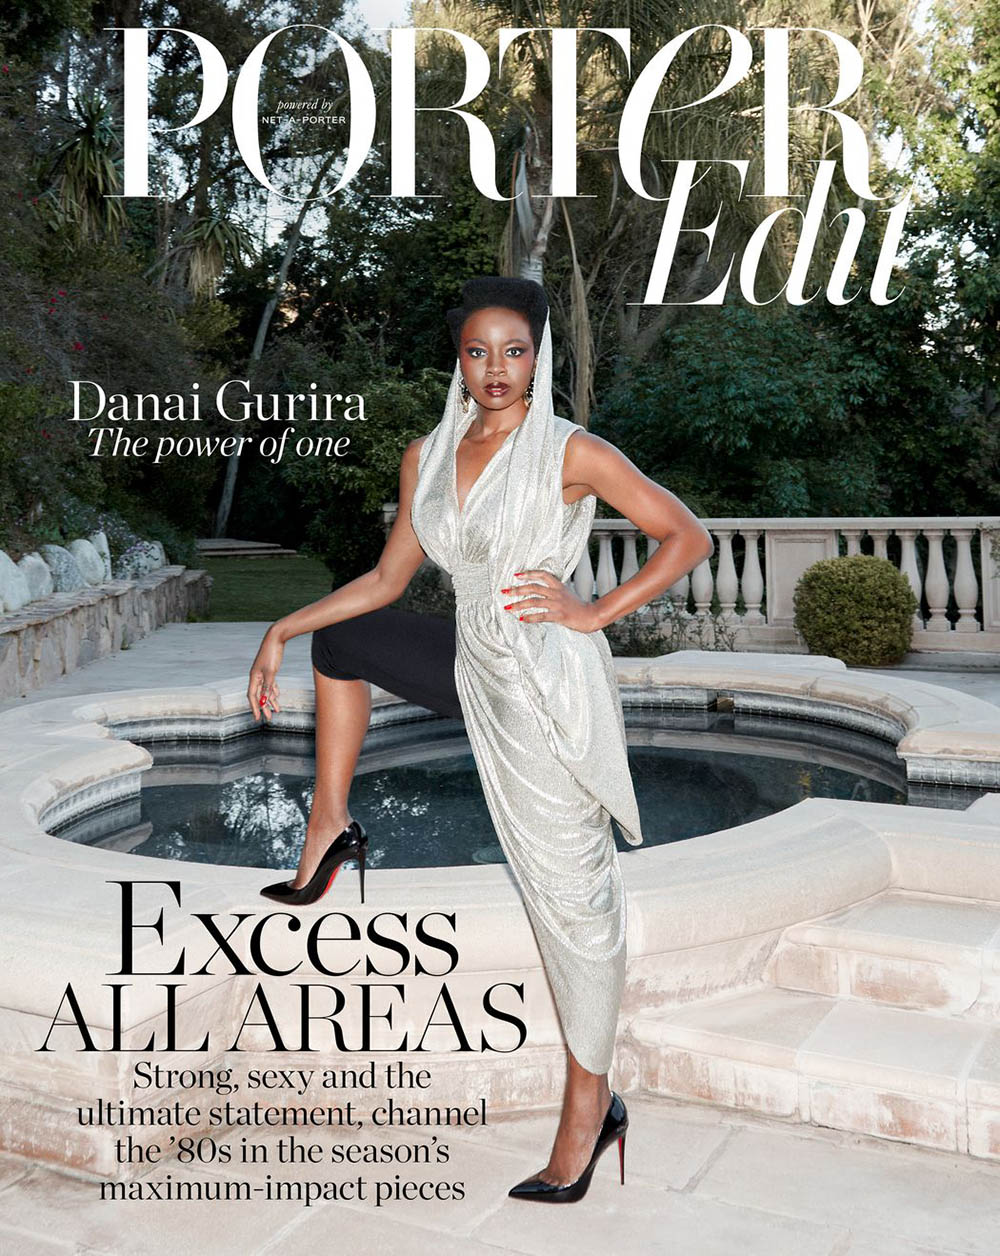 Danai Gurira covers Porter Edit April 26th, 2019 by Claire Rothstein